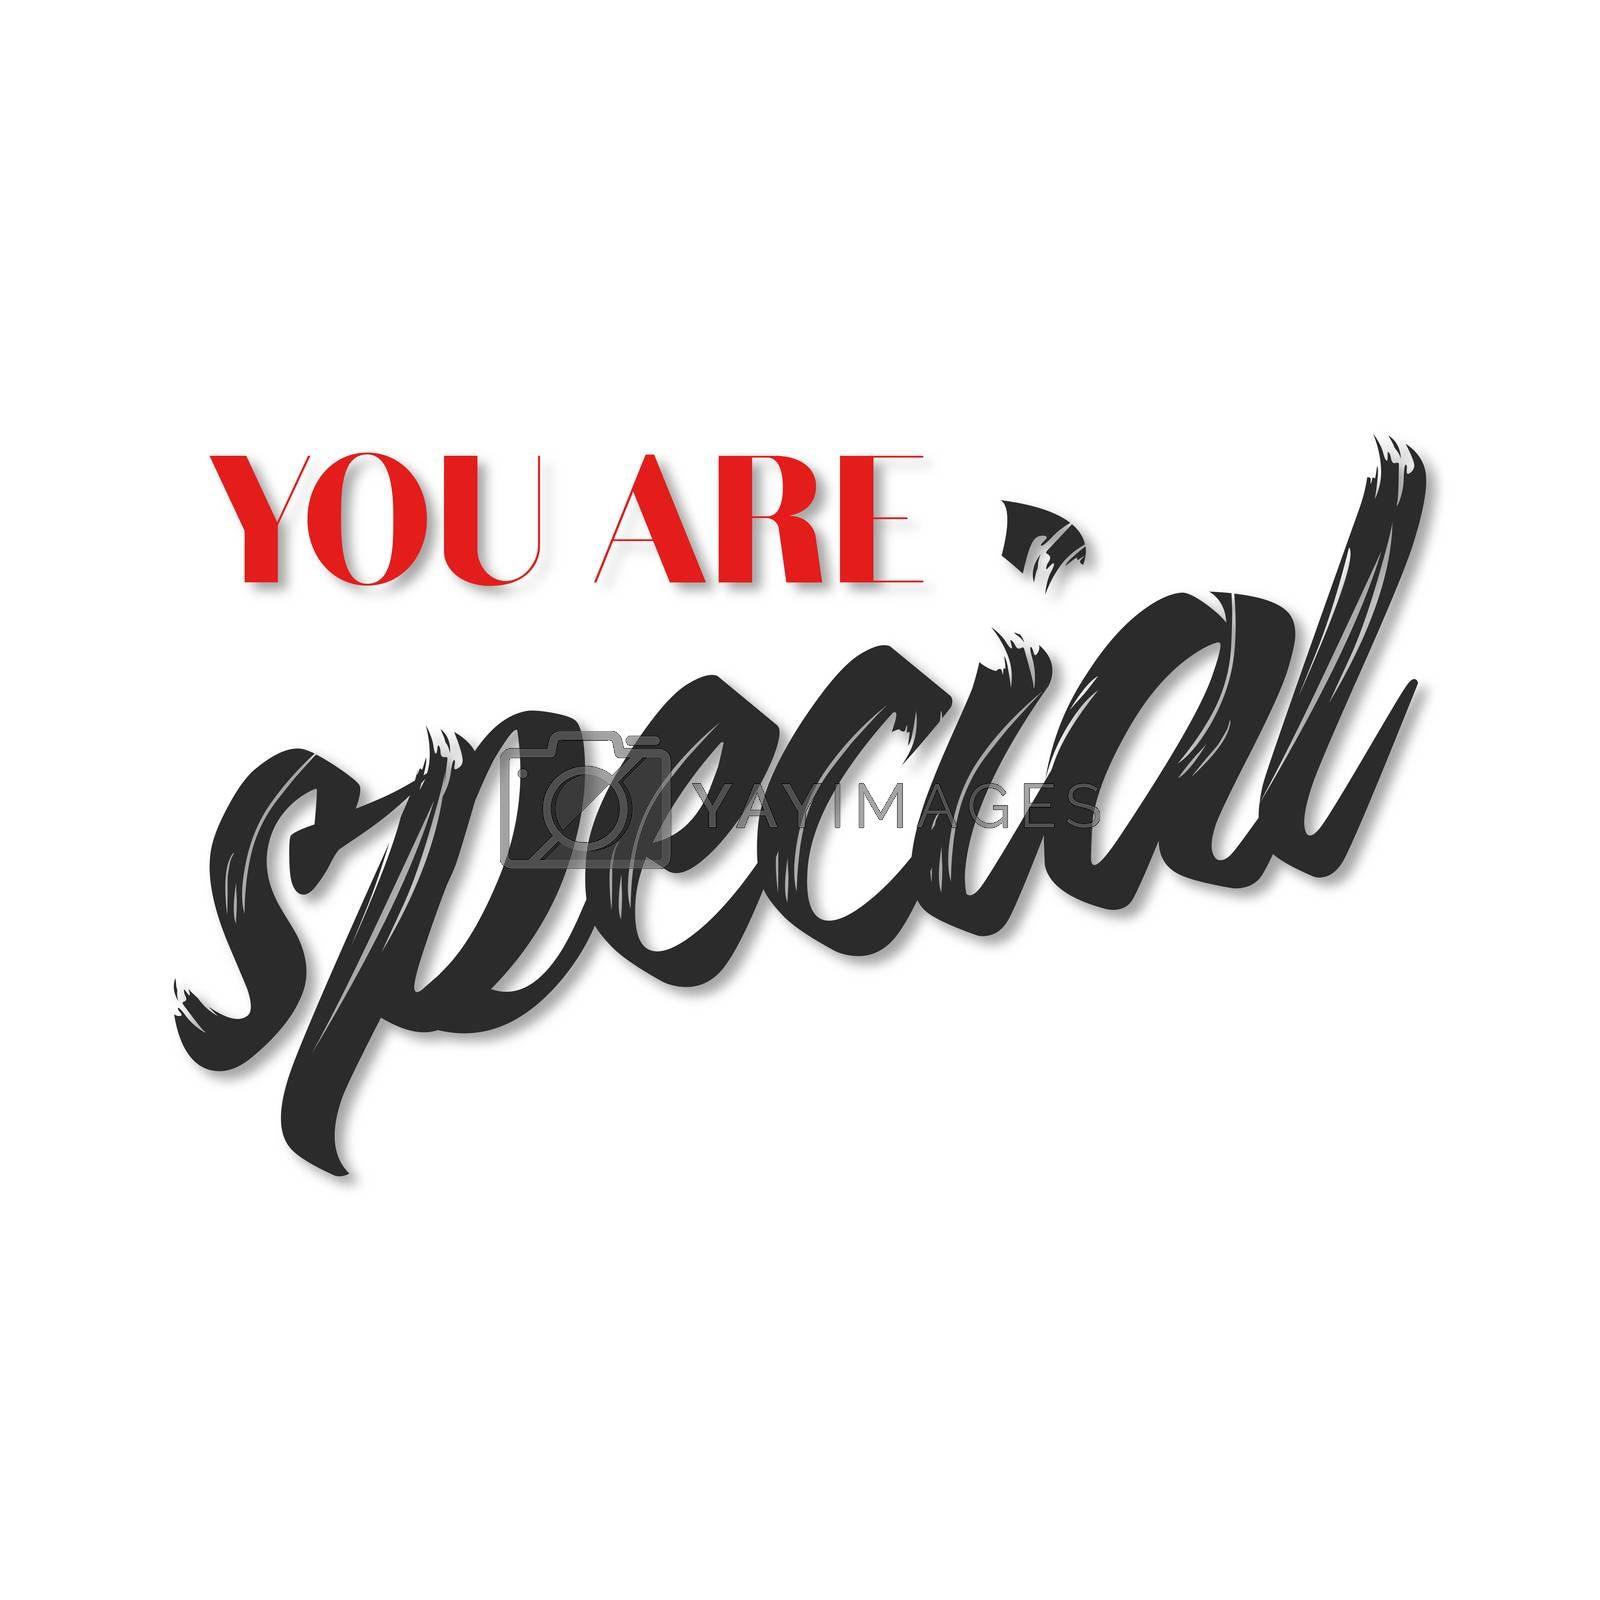 You are special quote poster. Red and black typography on white background